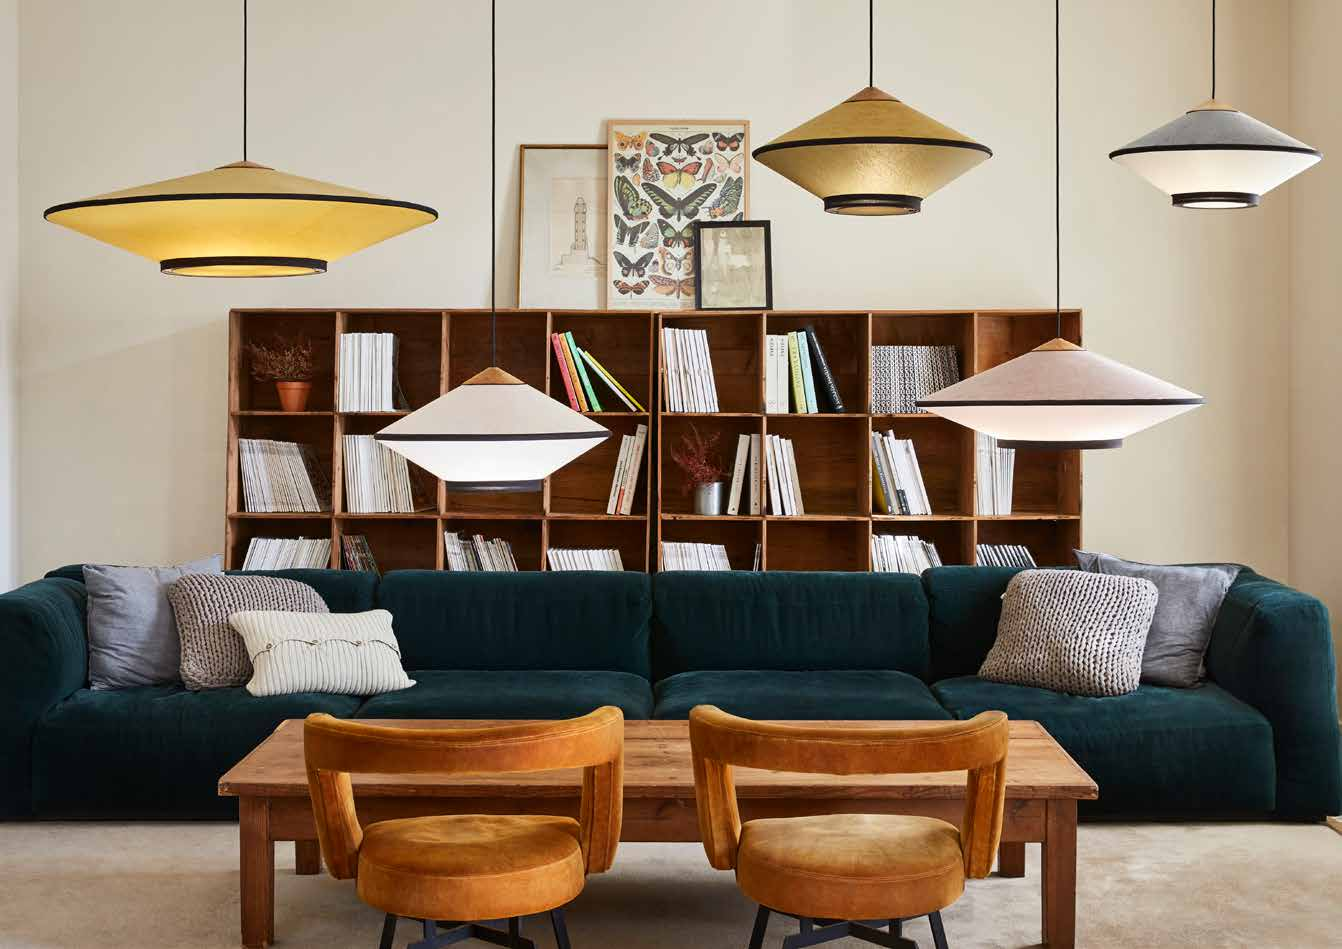 Suspensions Lumiere Forestier - Cymbal Suspension Lamp